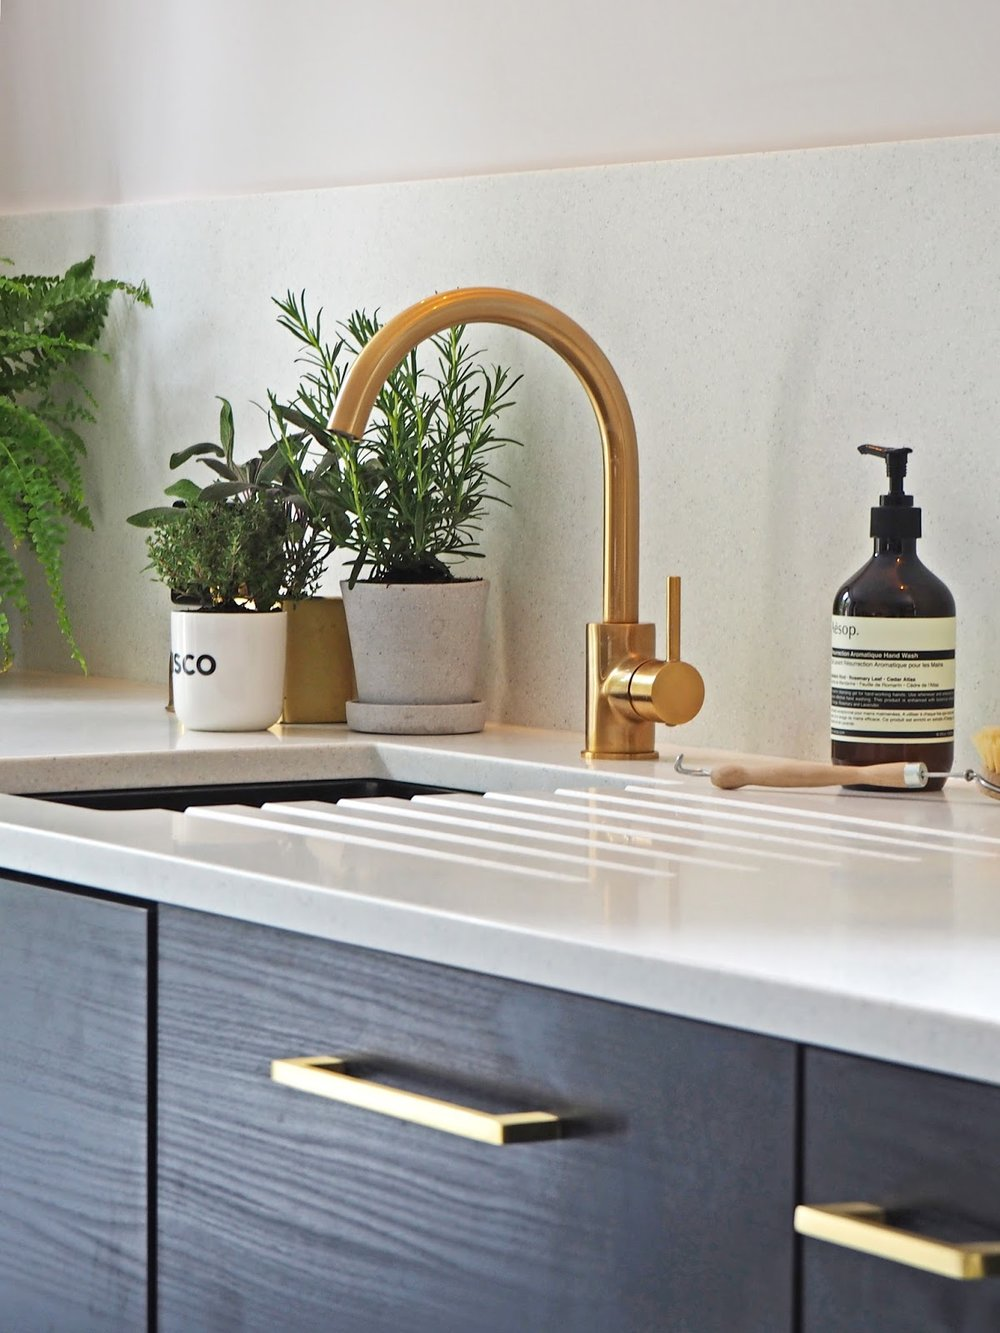 French For Pineapple Blog - contemporary gold tap and undermounted sink with pale flecked mistral mist worktops, black wood grain cupboards and satin brass handles. Herbs and aesop soap on worktop.